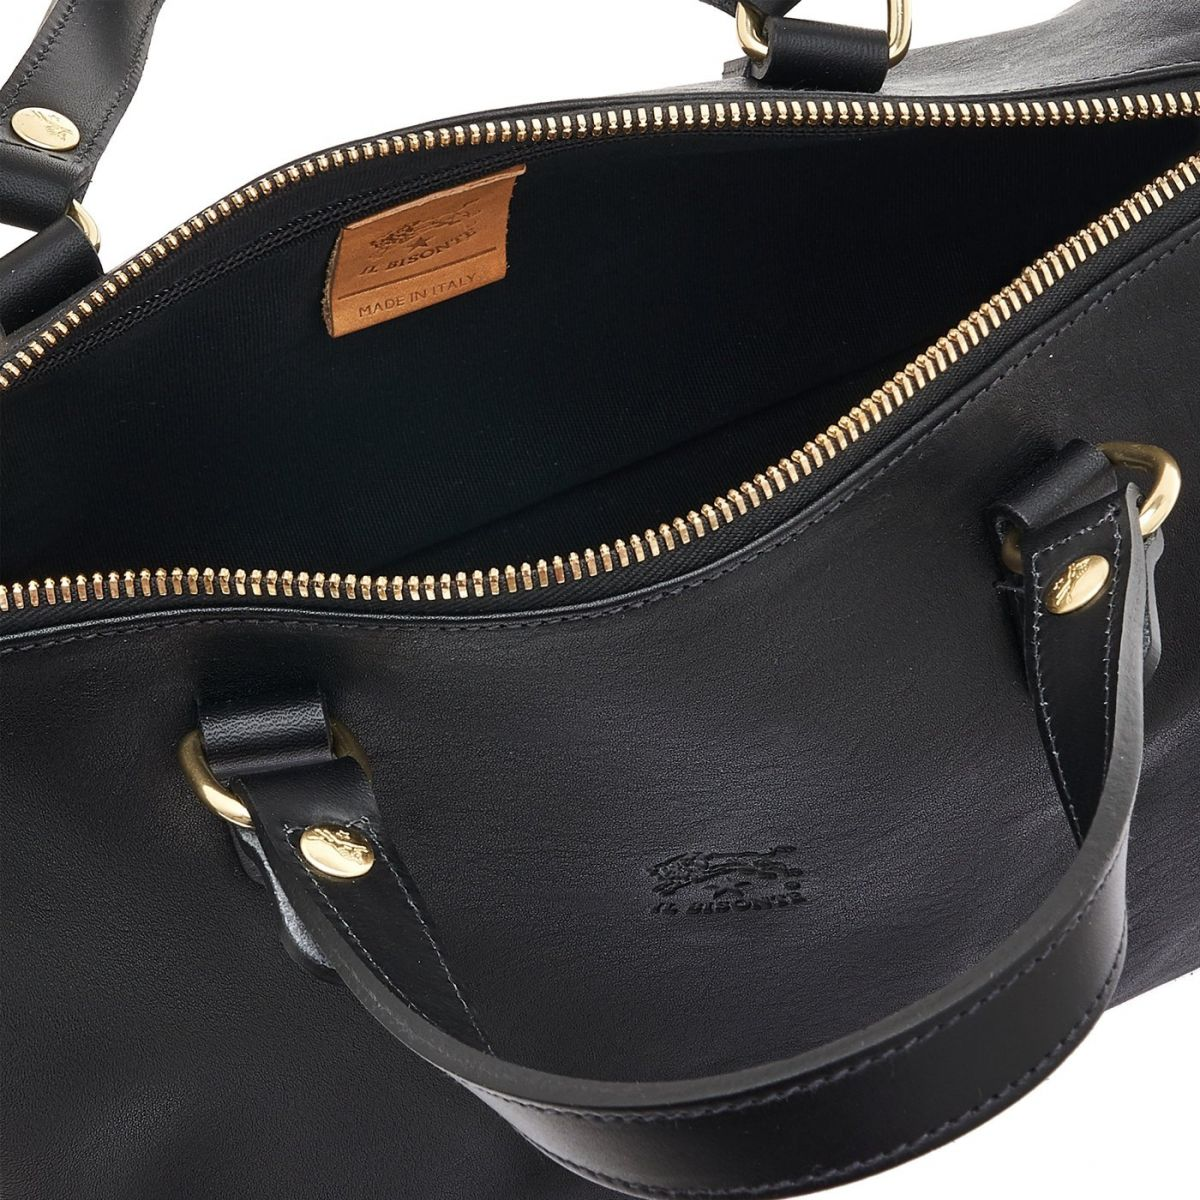 Women's Handbag in Vintage Cowhide Leather BTH019 color Black | Details